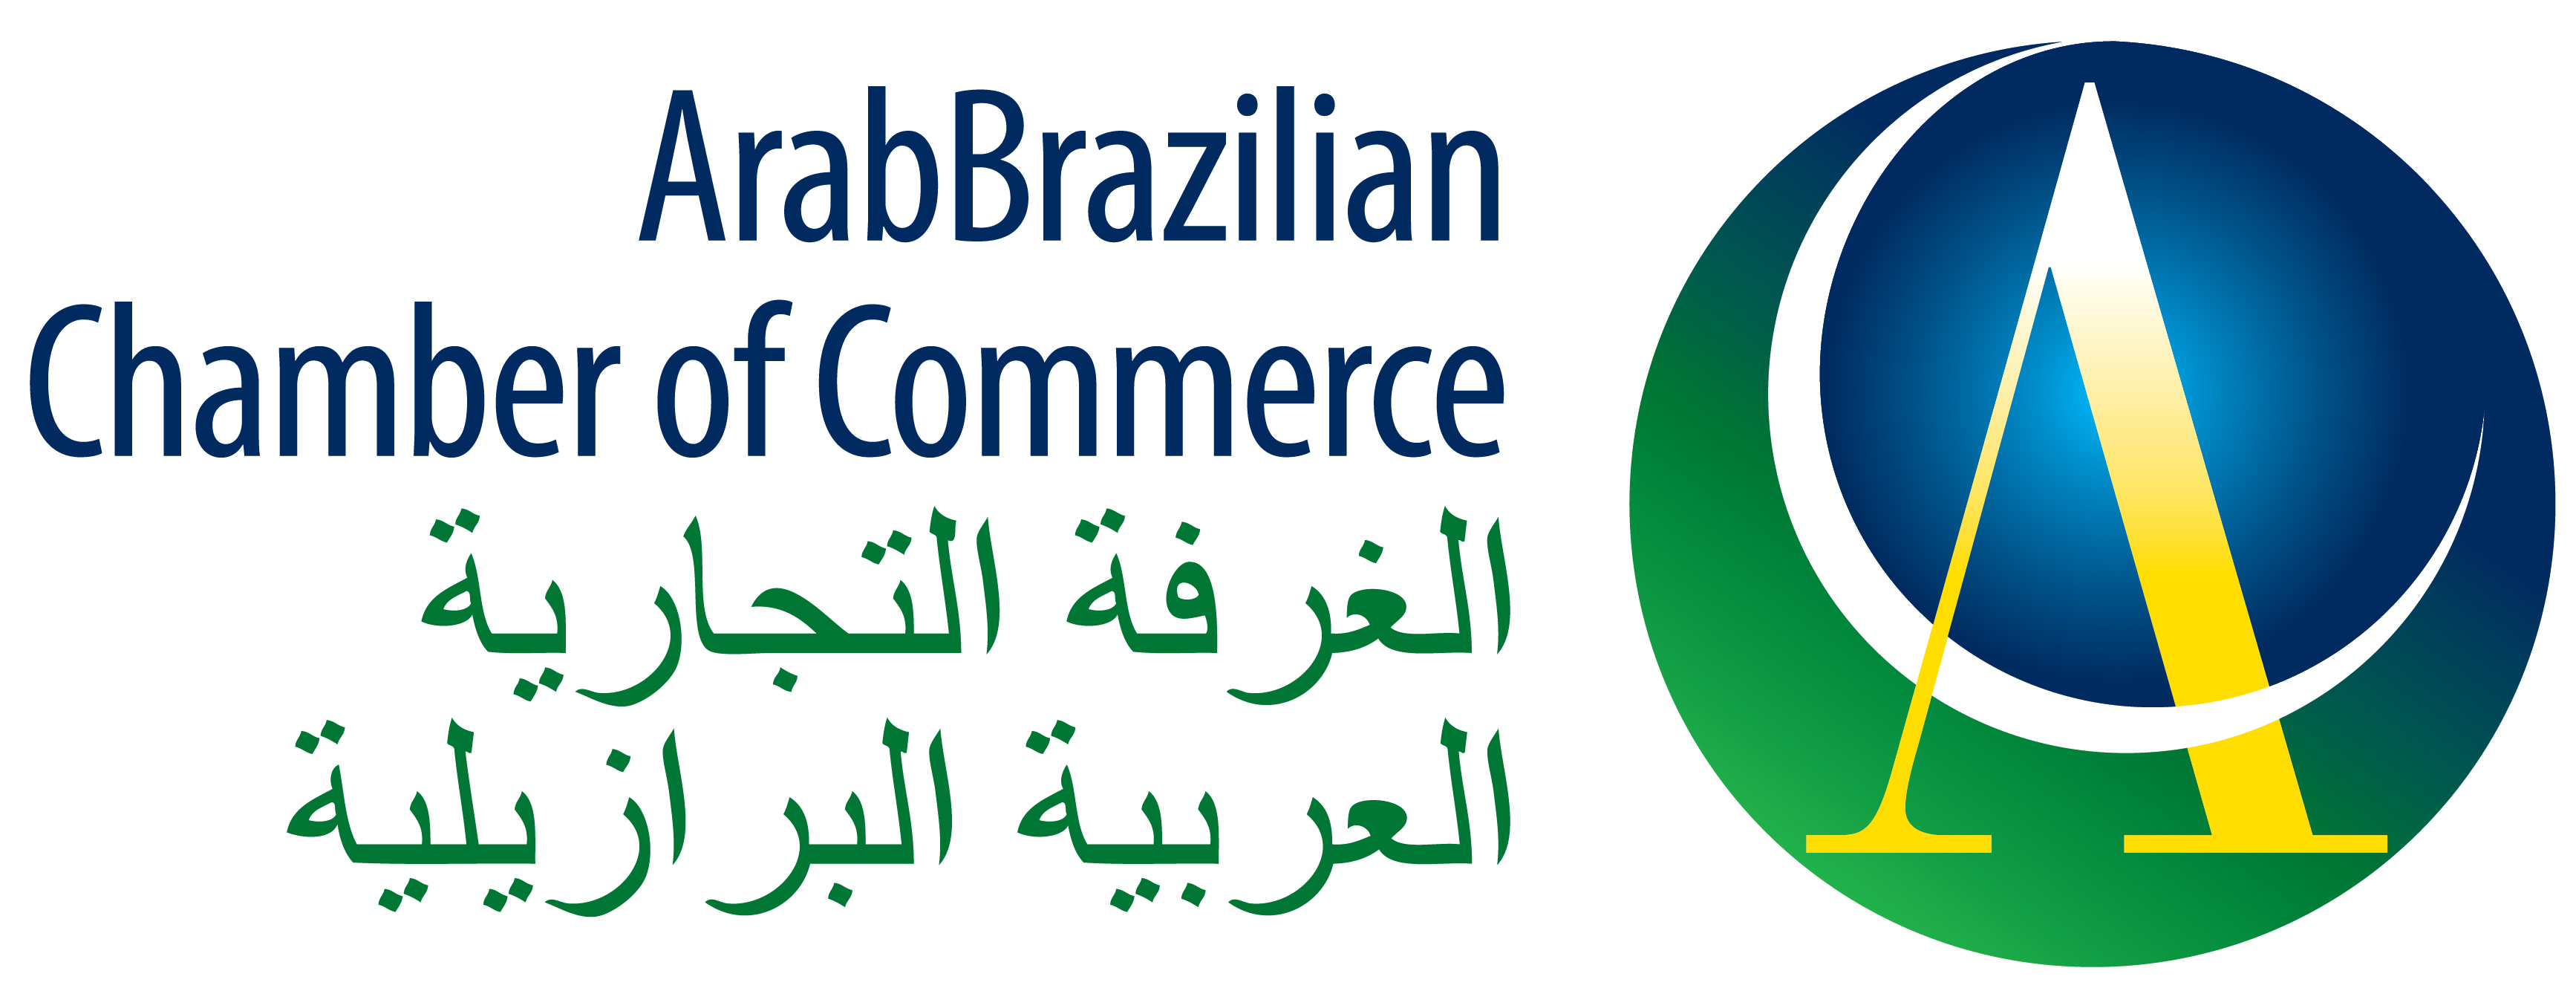 The Arab Brazilian Chamber of Commerce